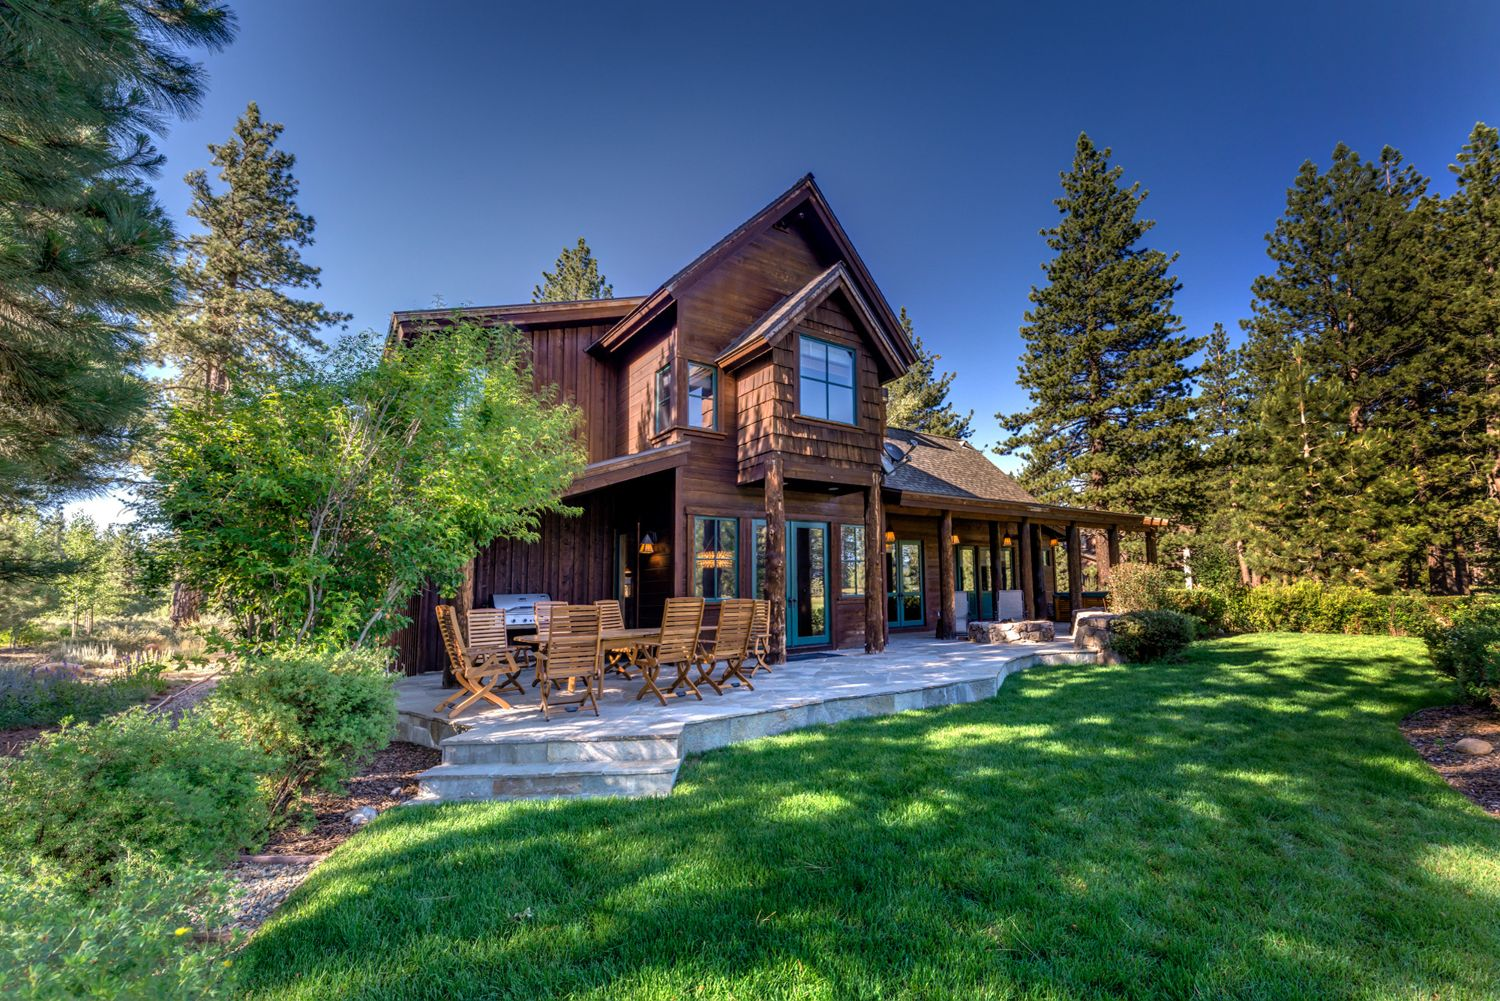 East West Hospitality mountain home in Truckee, California.